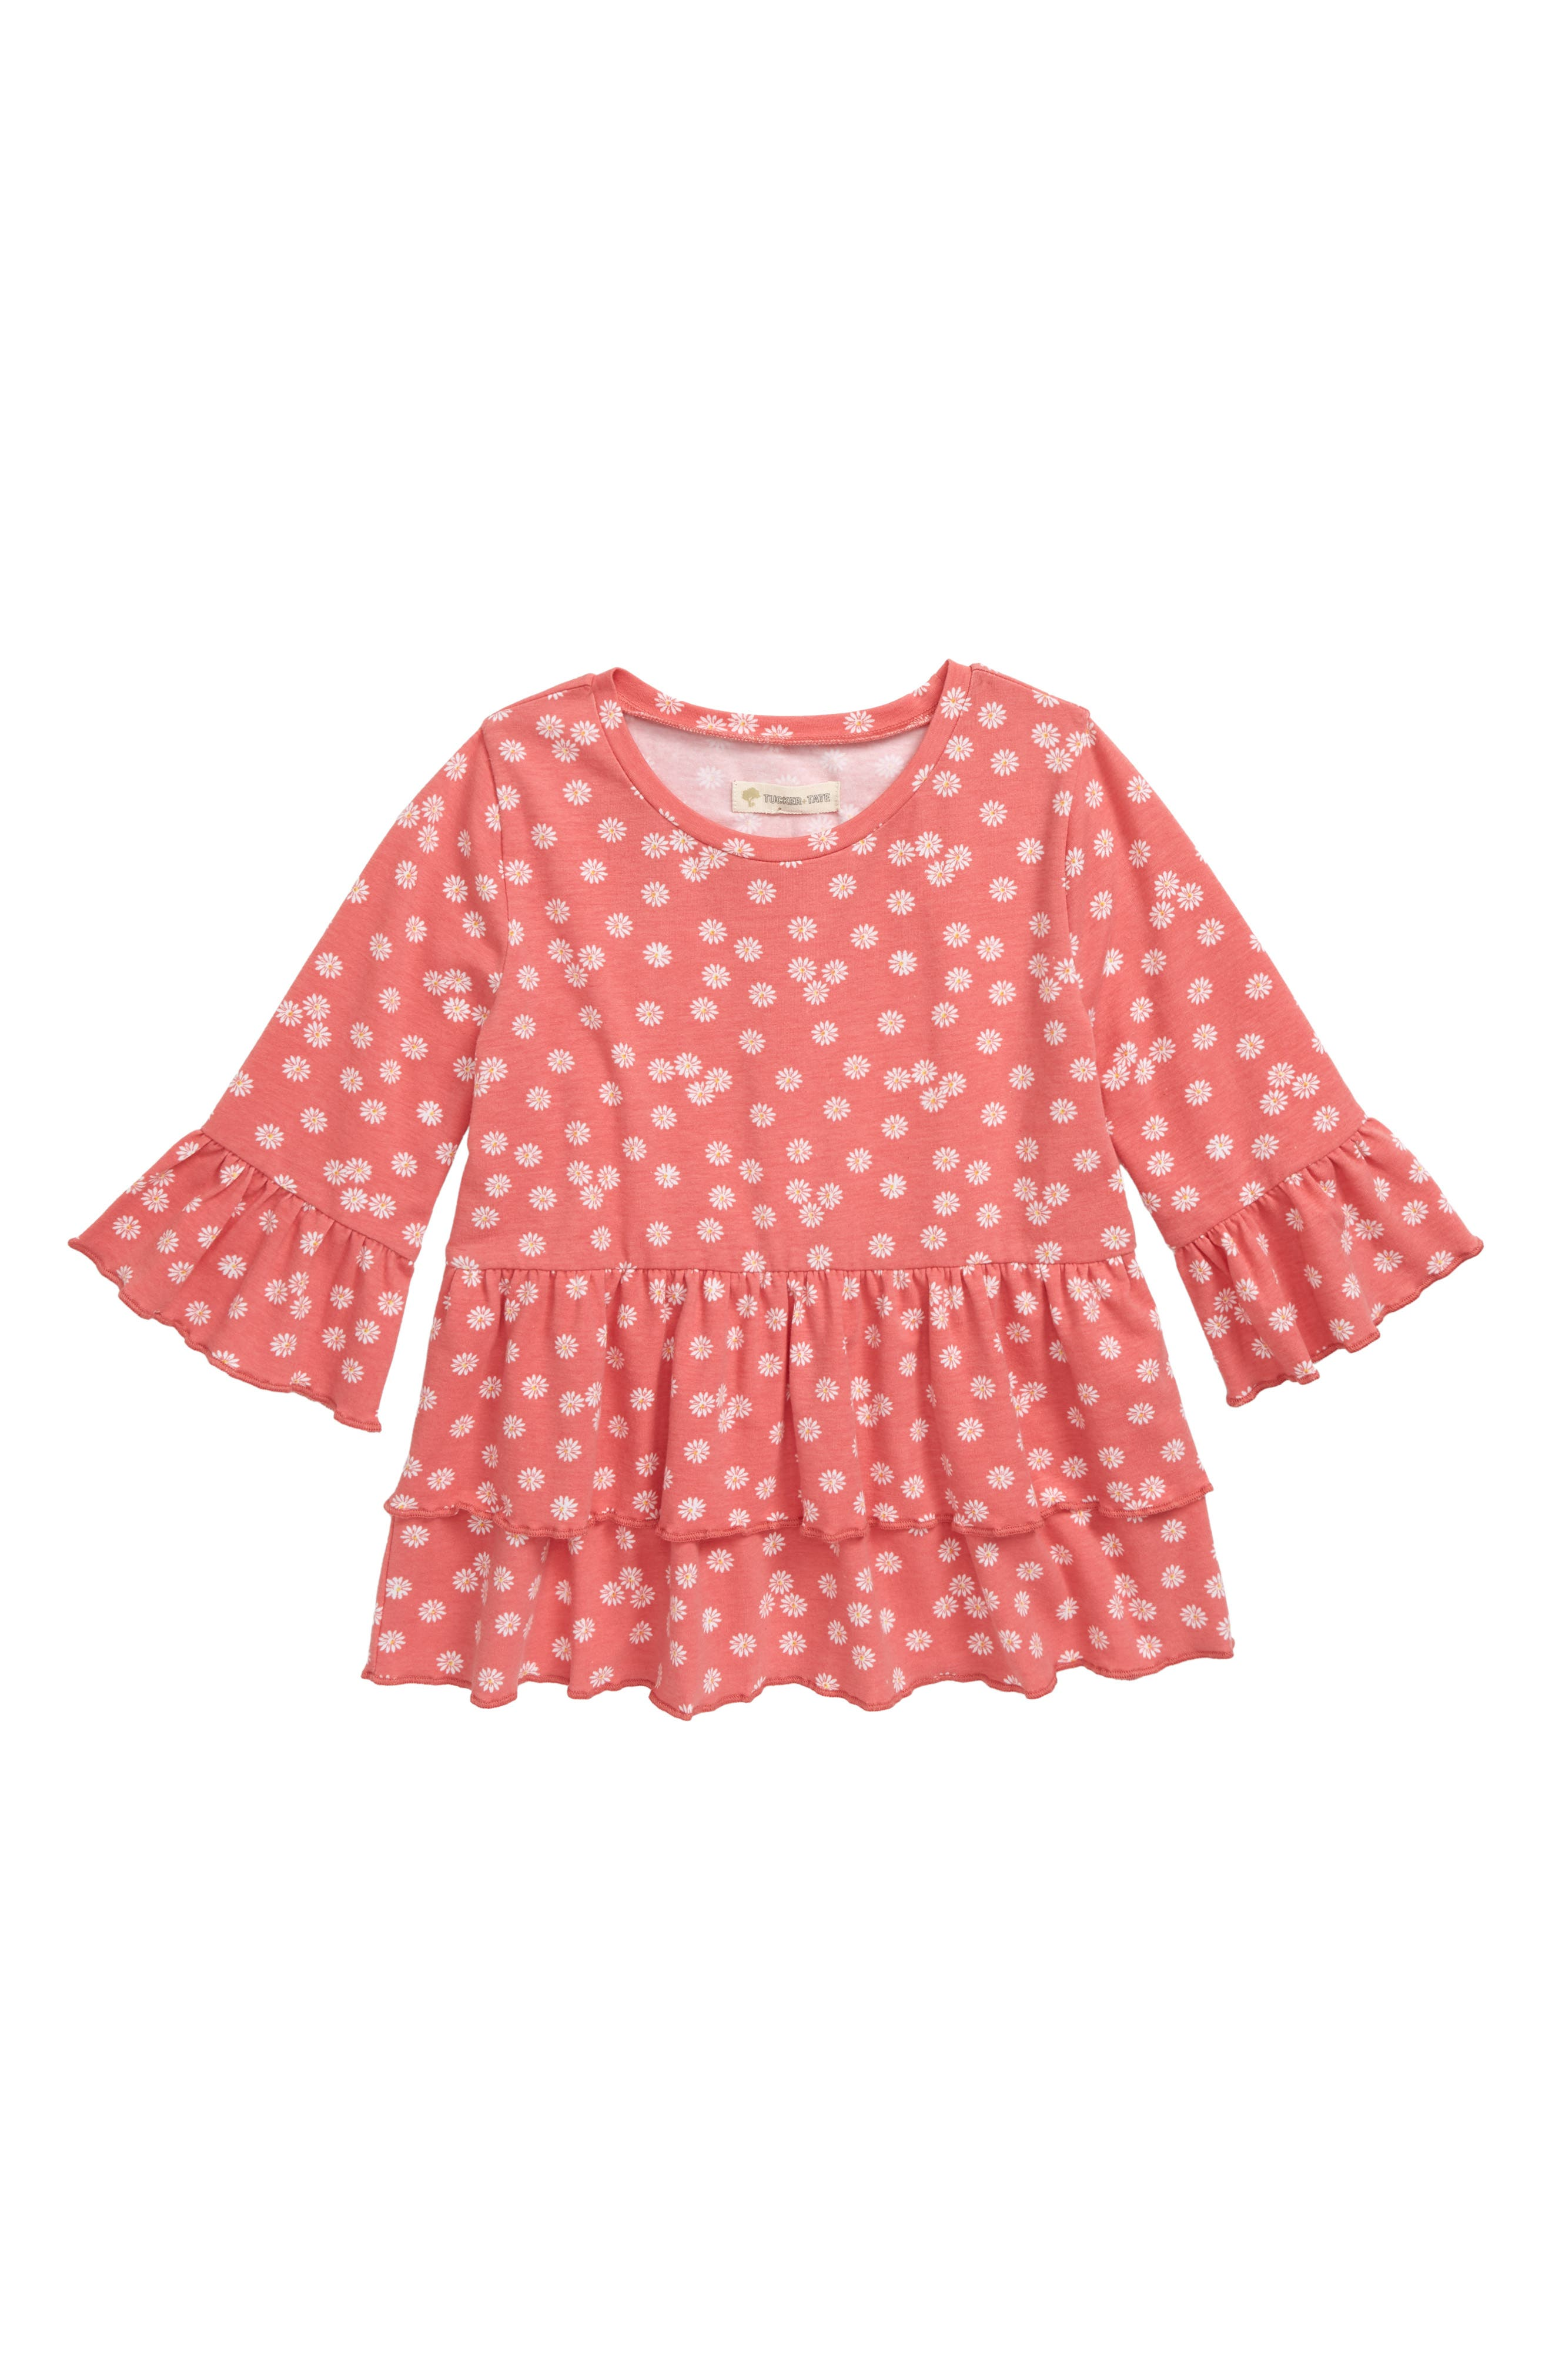 Girls Tucker  Tate Tiered Ruffle Top Size 7  Pink